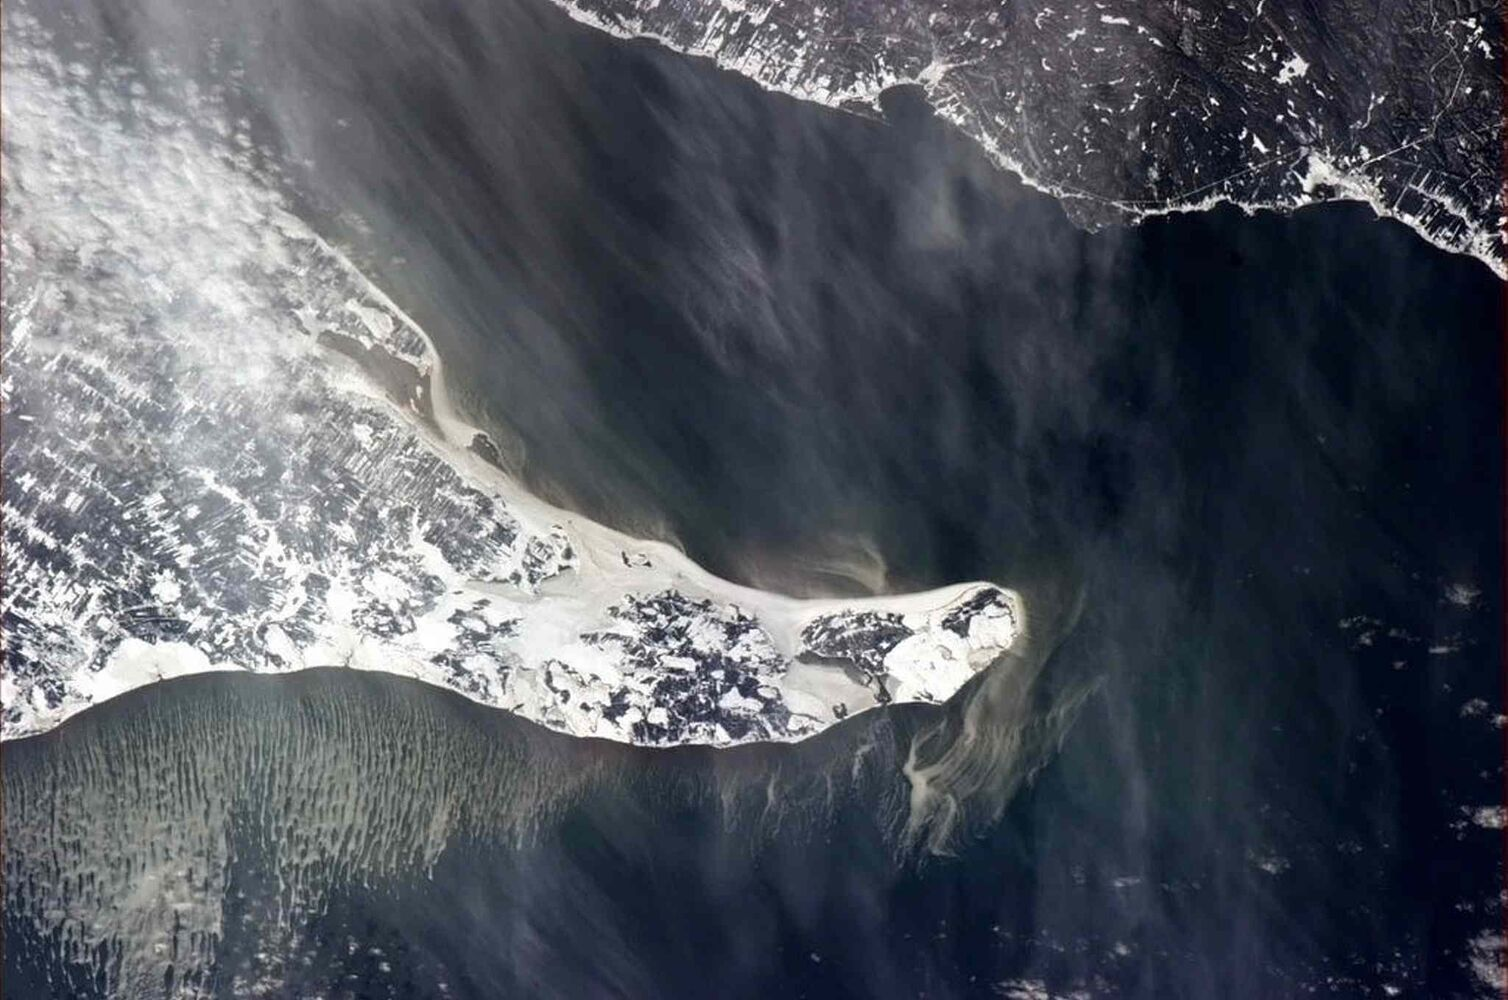 The Baie-des-Chaleurs, separating Quebec's Gaspe Peninsula (top right) and New Brunswick's Acadian Peninsula (centre), is shown in a photo posted on Twitter on Jan. 4, 2013 by Canadian astronaut Chris Hadfield.